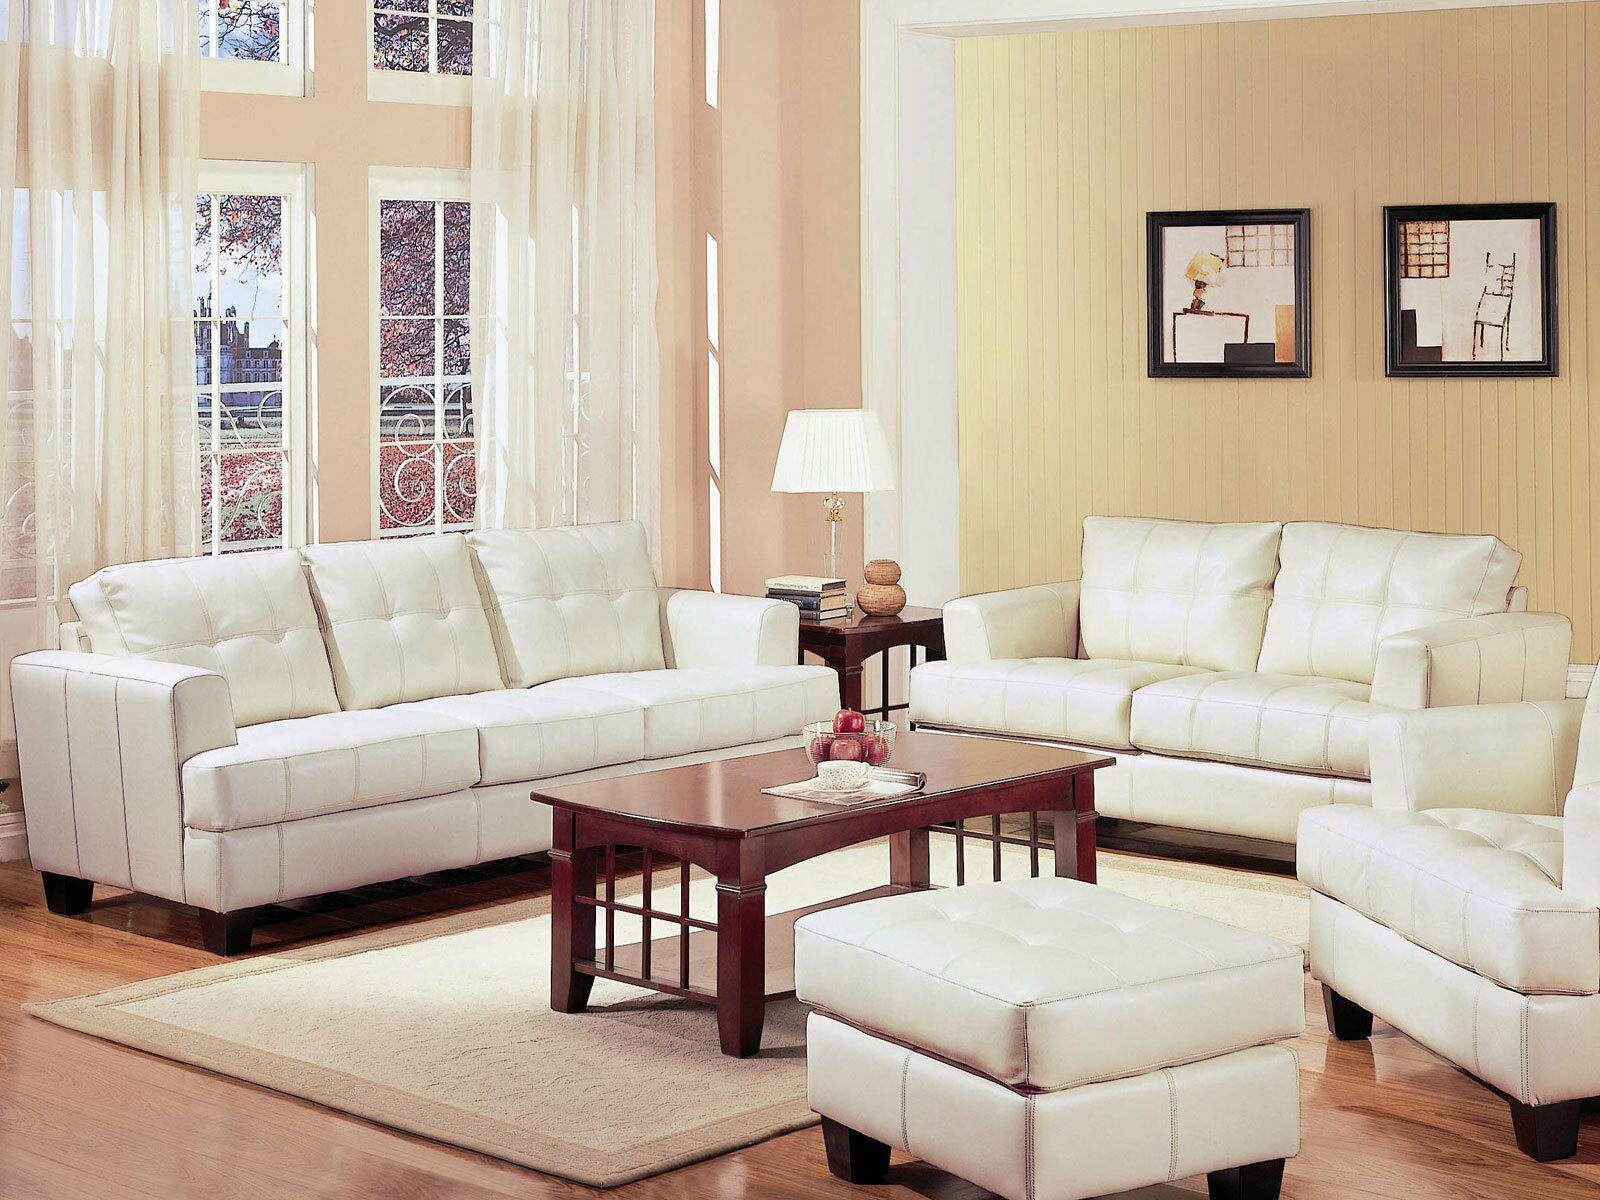 Picture of: New White Bonded Leather Sofa Loveseat Modern Living Family Room Couch Set G7l For Sale Online